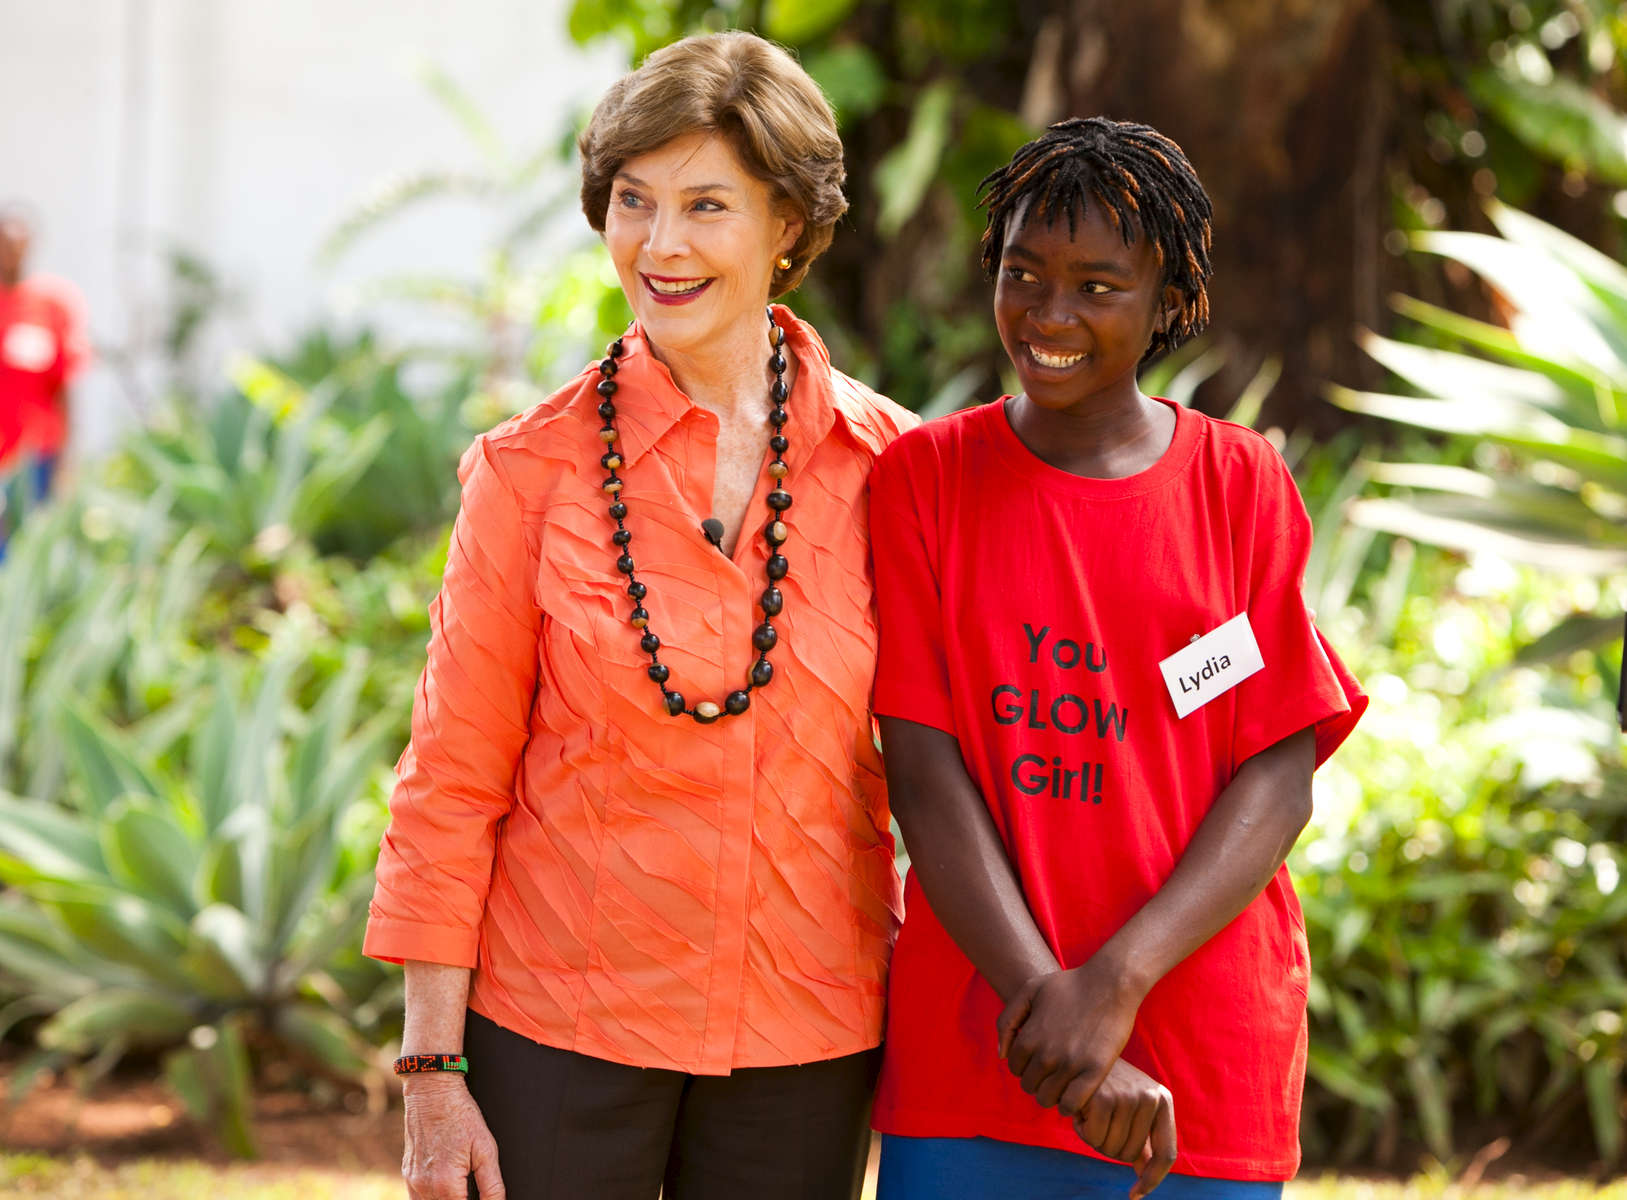 The trip of President and Mrs. Bush to Lusaka, Zambia on December 3, 2011. VISIT TO GIRLS LEADING OUR WORLD (GLOW)